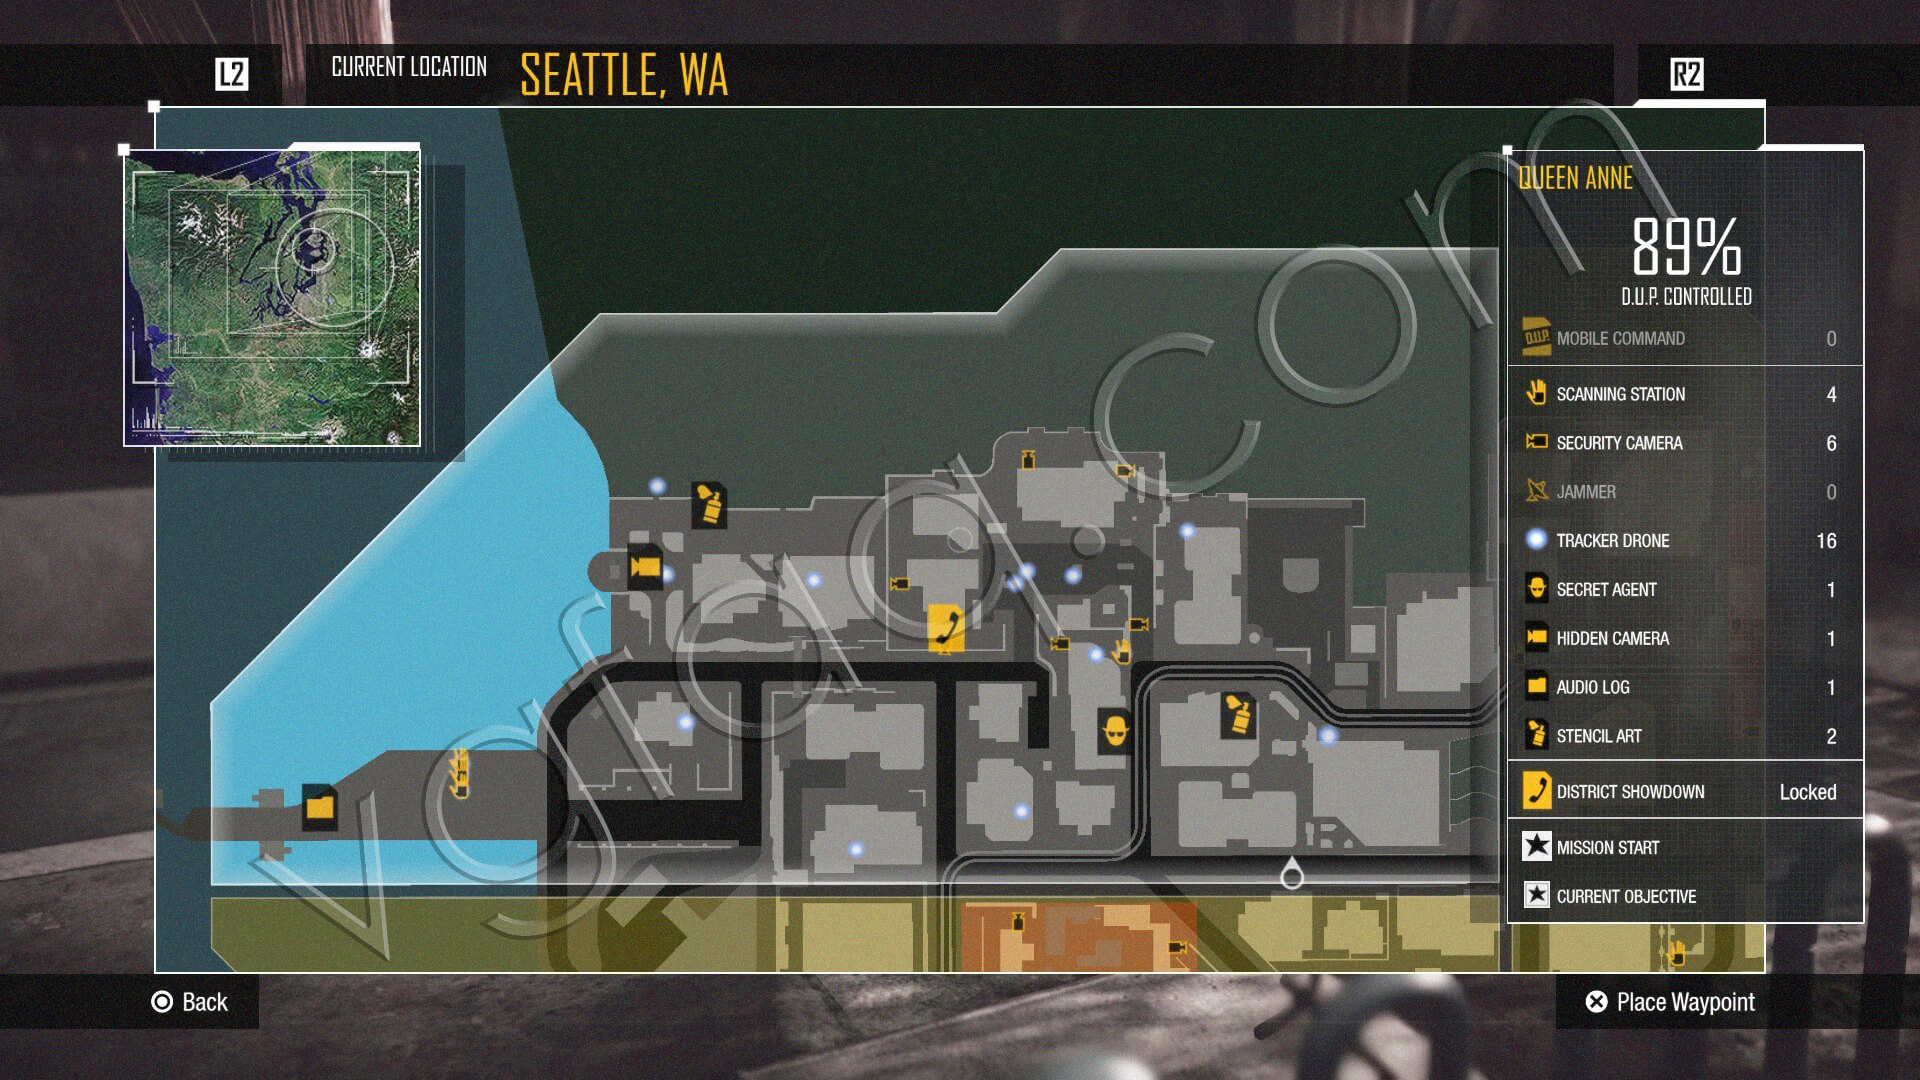 inFamous: Second Son Tracker Drones Locations - Video Games, Wikis on infamous last level, infamous ps3, infamous 2 bird locations, dead drop locations map, blast shards ps3 map, infamous 1 shard locations, lost hatch map, infamous dead drops, dead town jak 2 map, infamous 2 pigeon locations, harvard map,